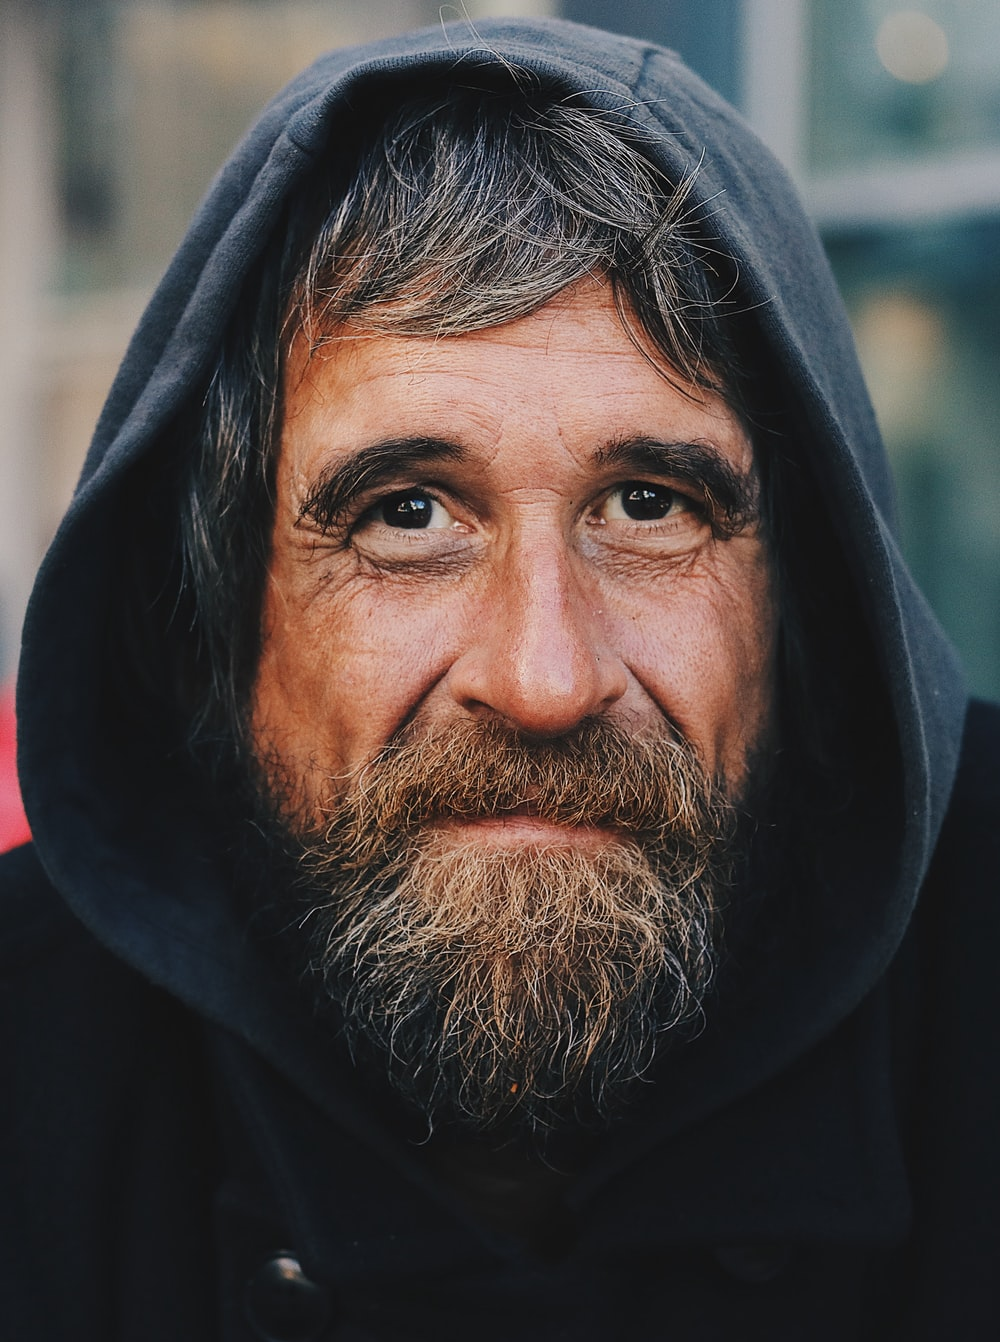 portrait photo of a man wearing hoodie